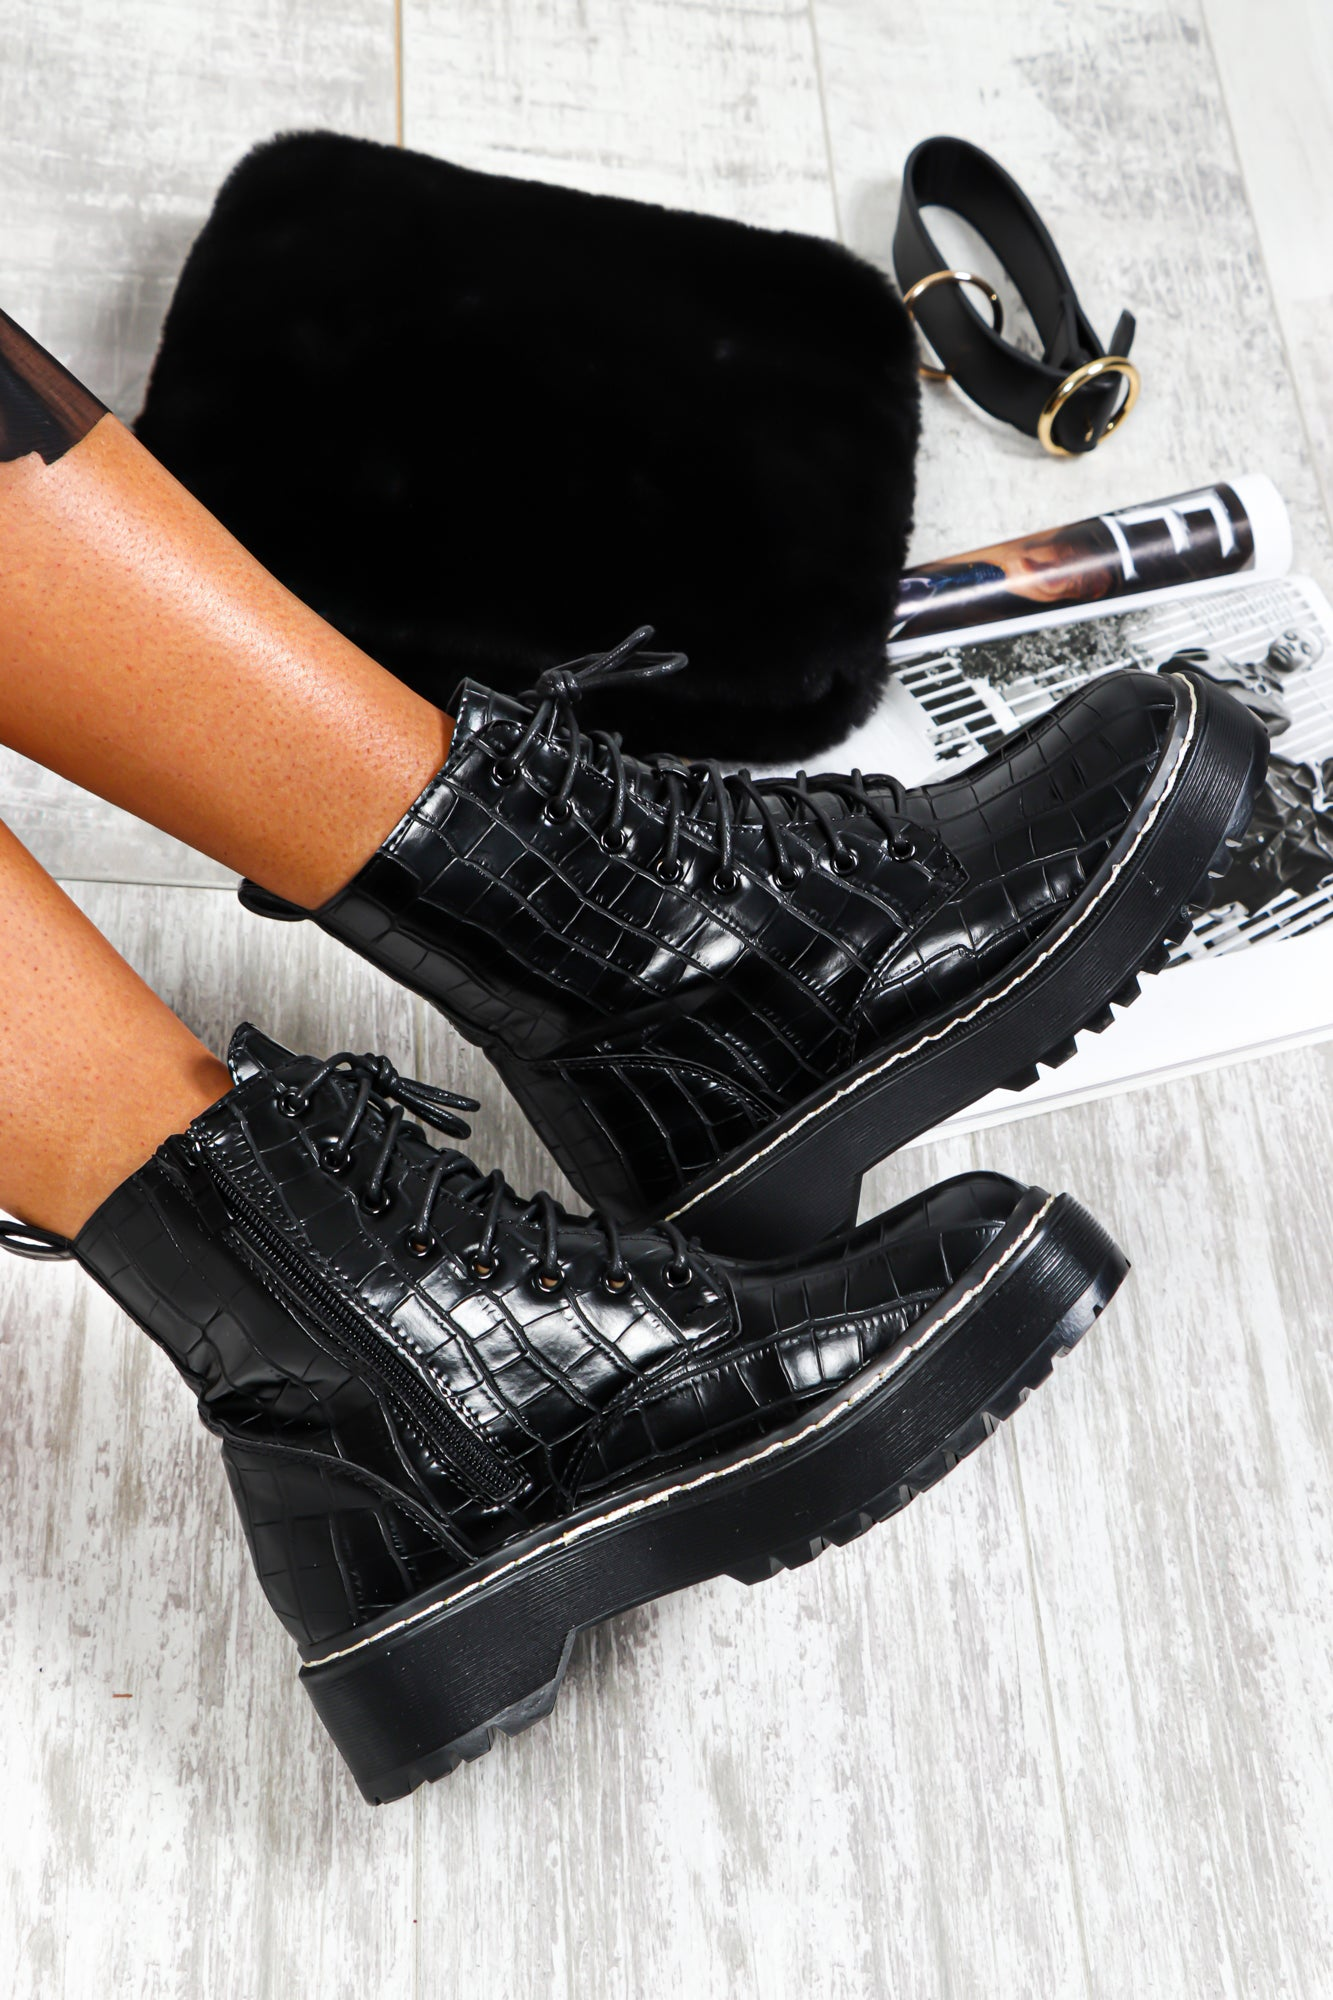 Boot 'Em Up - Boots In BLACK/CROC